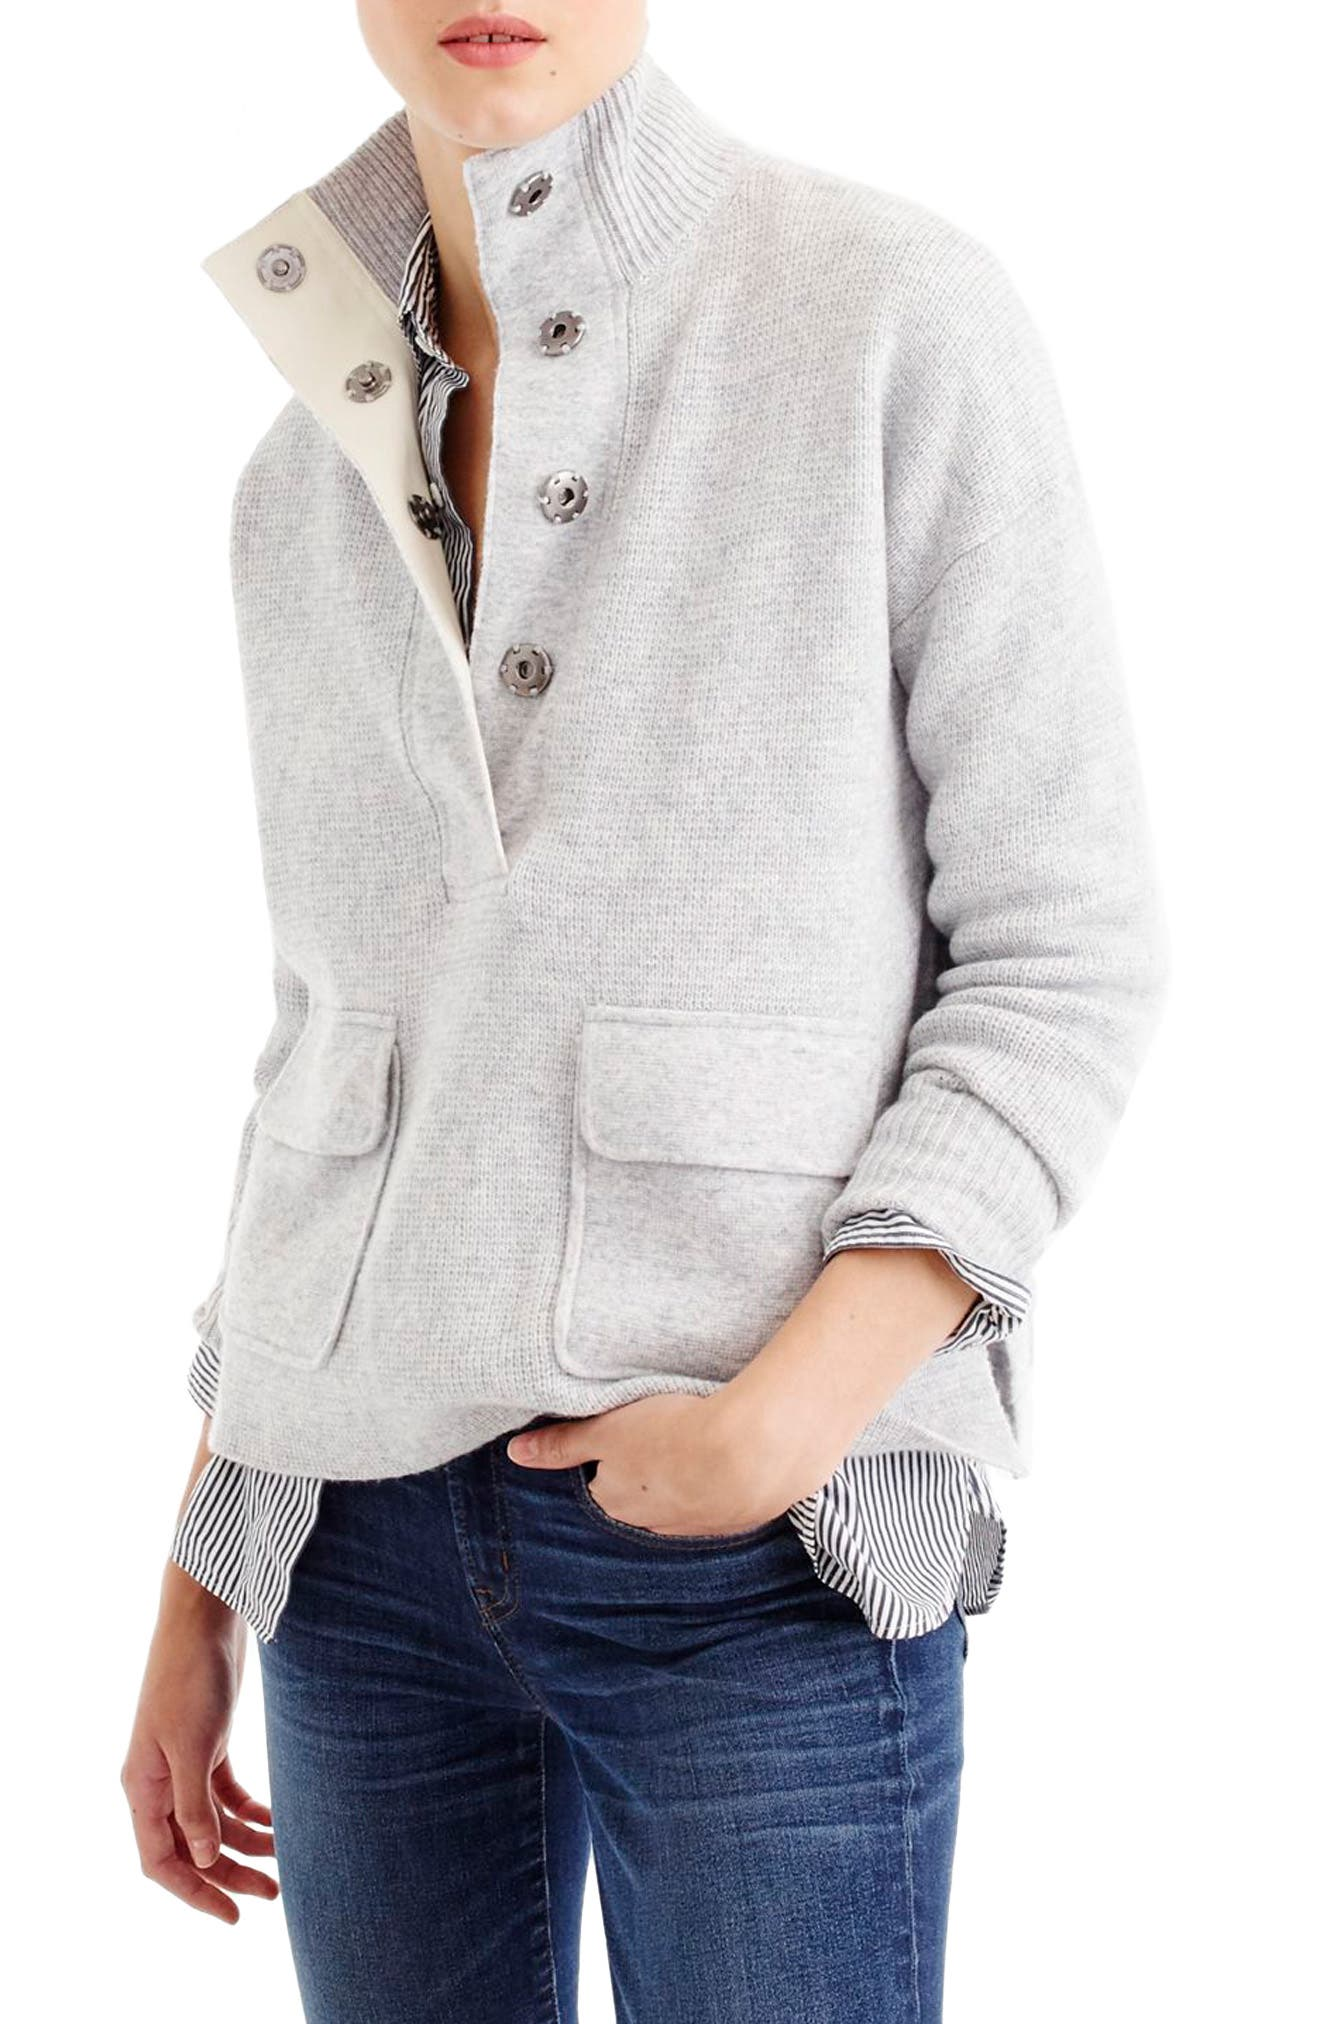 Alternate Image 1 Selected - J.Crew Snap Placket Pullover Sweater